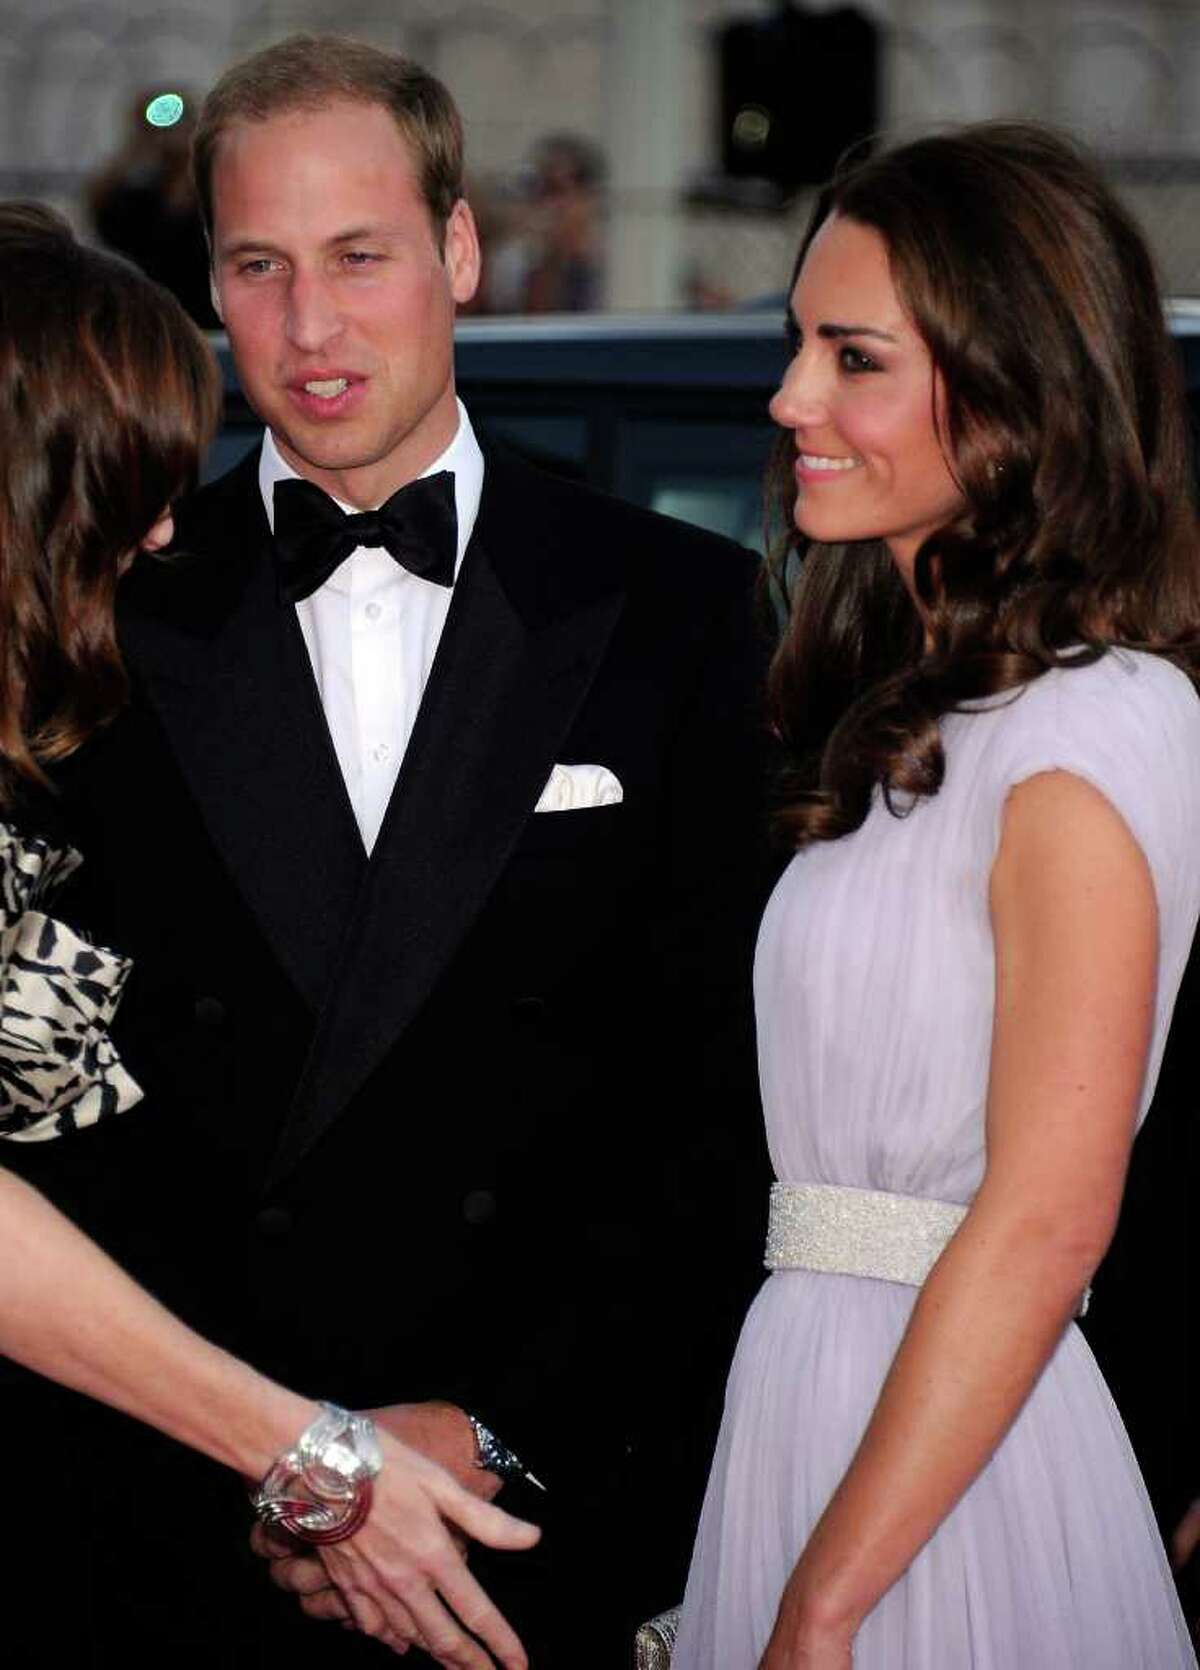 Prince William, Duke of Cambridge (L) and Catherine, Duchess of Cambridge arrive at the BAFTA Brits To Watch event held at the Belasco Theatre in Los Angeles on Saturday, July 9, 2011.